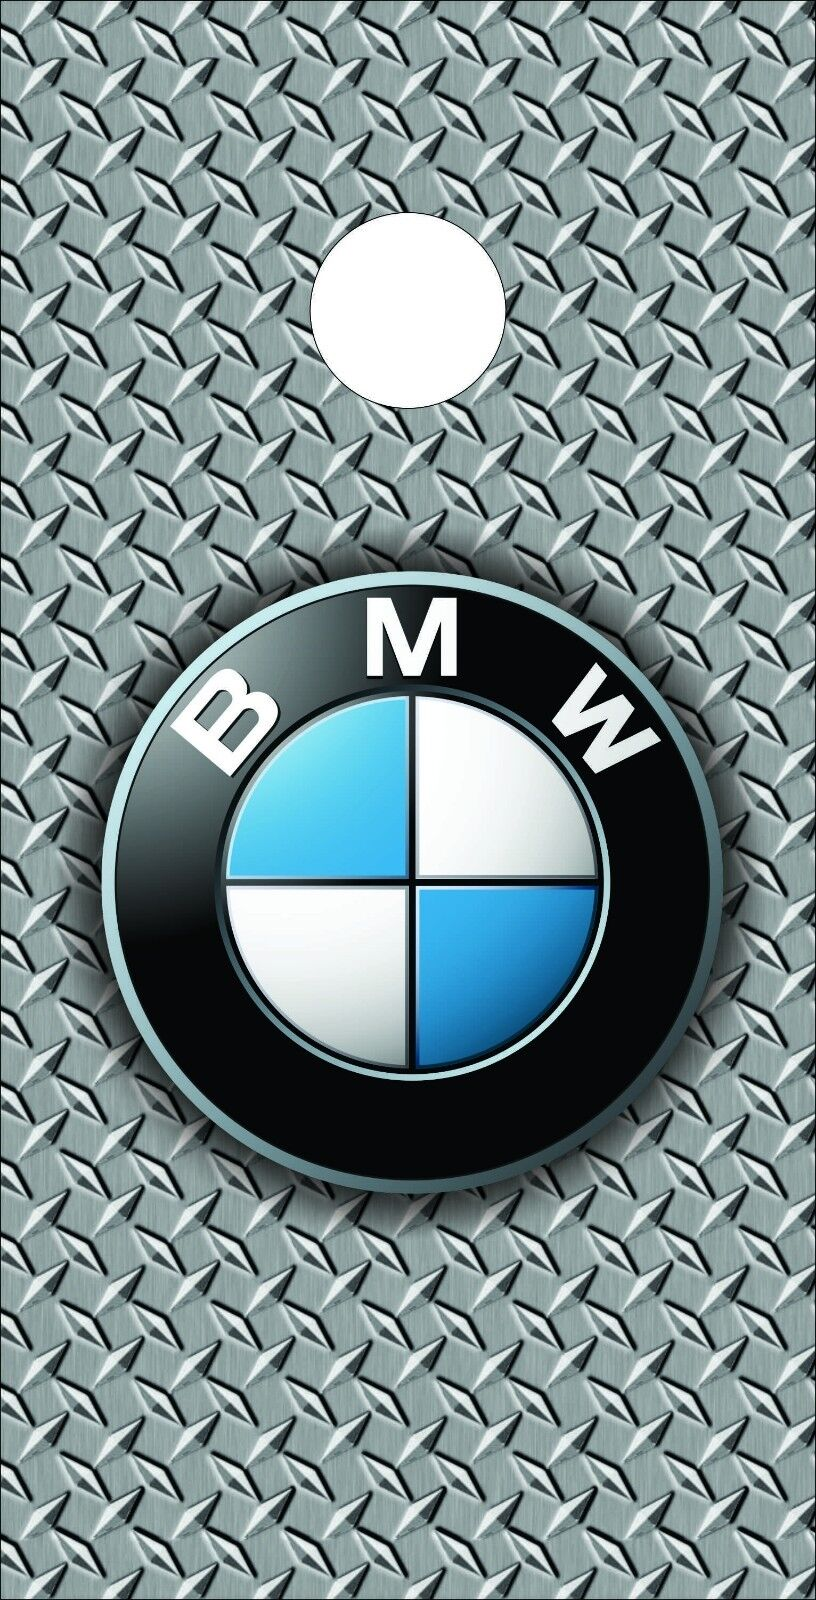 Corn Hole Graphic  - BMW cars and suvs  low 40% price